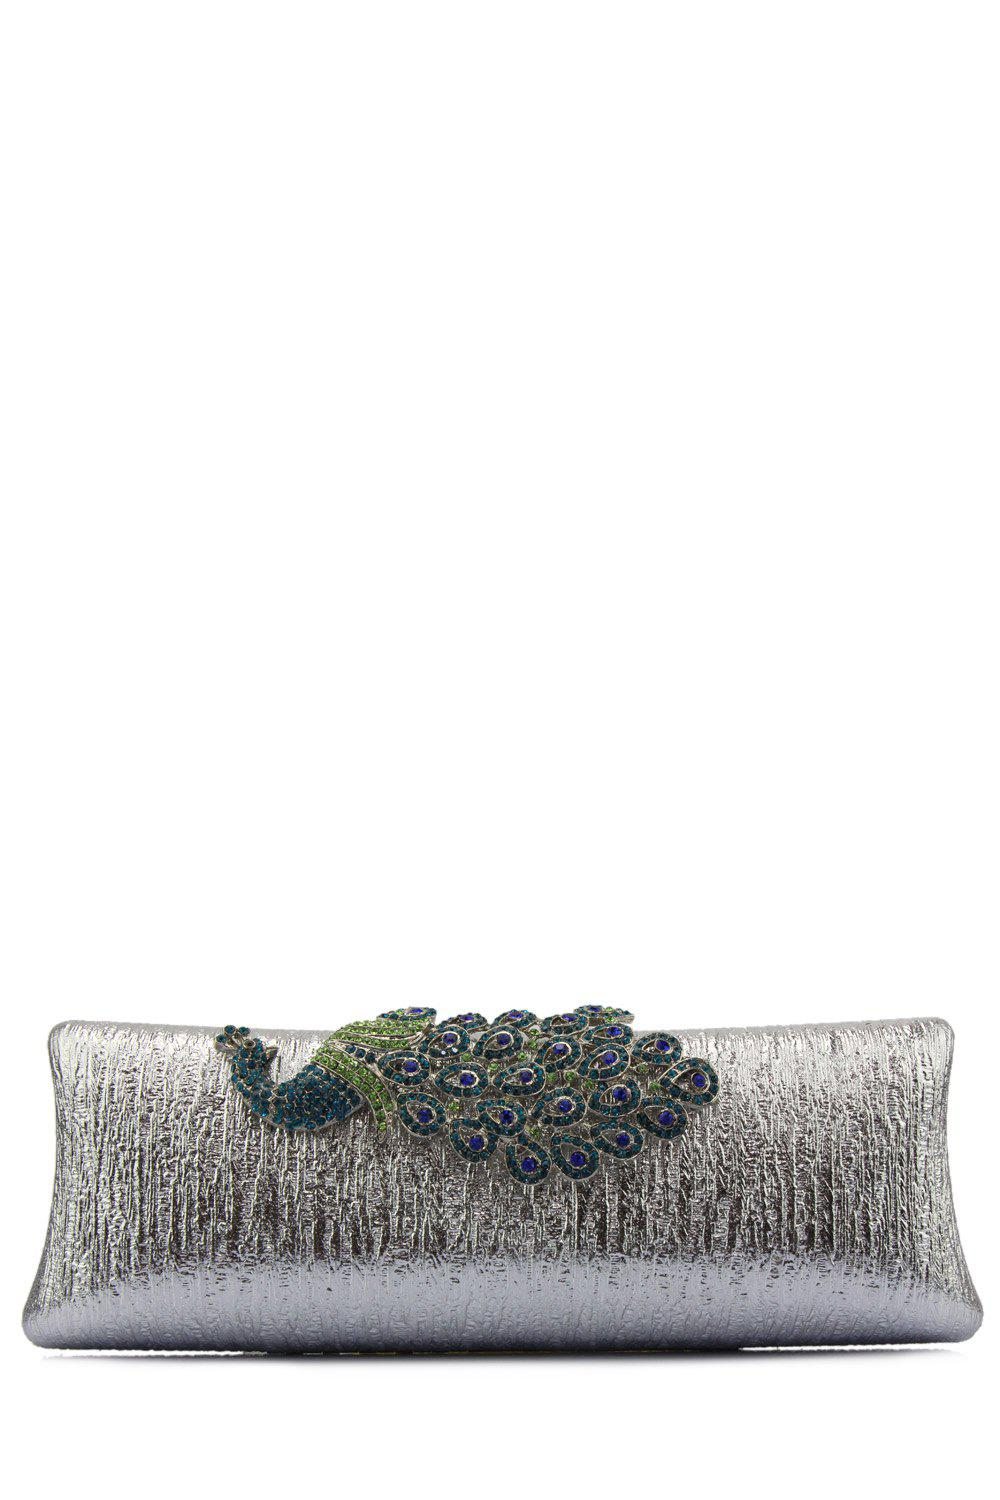 Cheap Peacock Embellished PU Evening Clutch